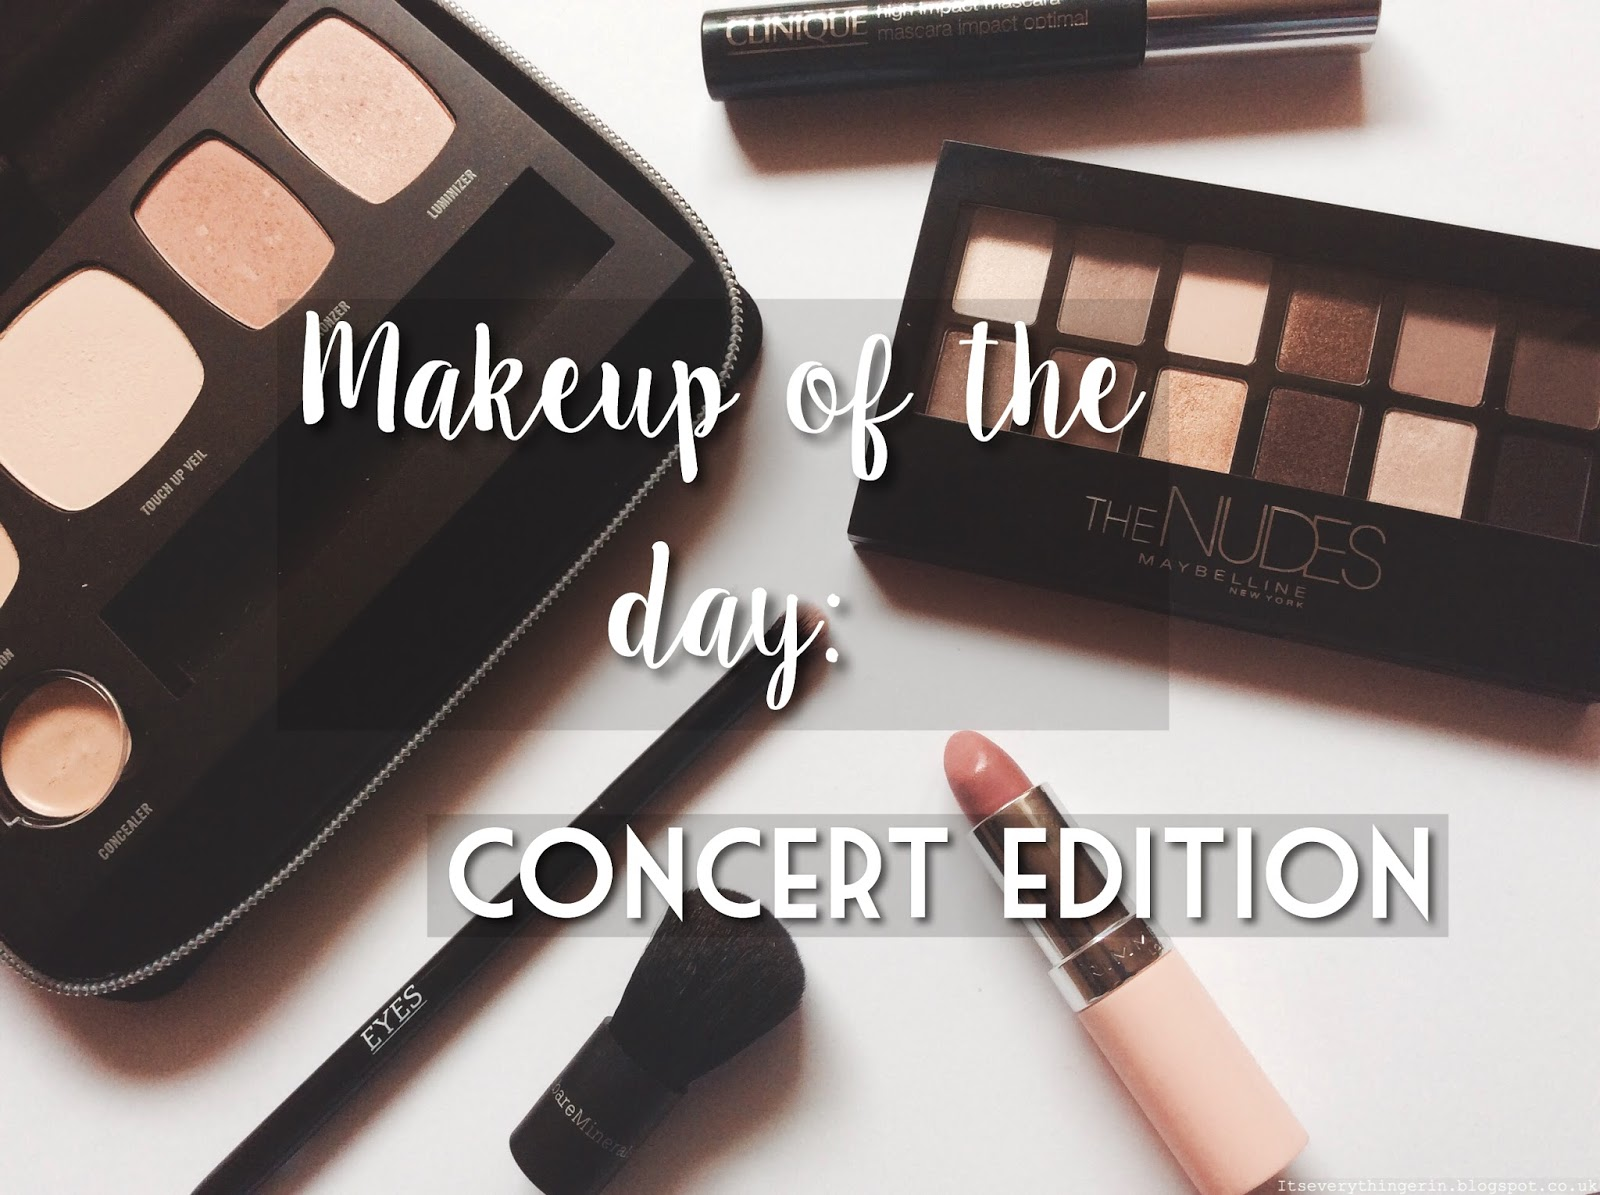 Makeup of the day: concert edition